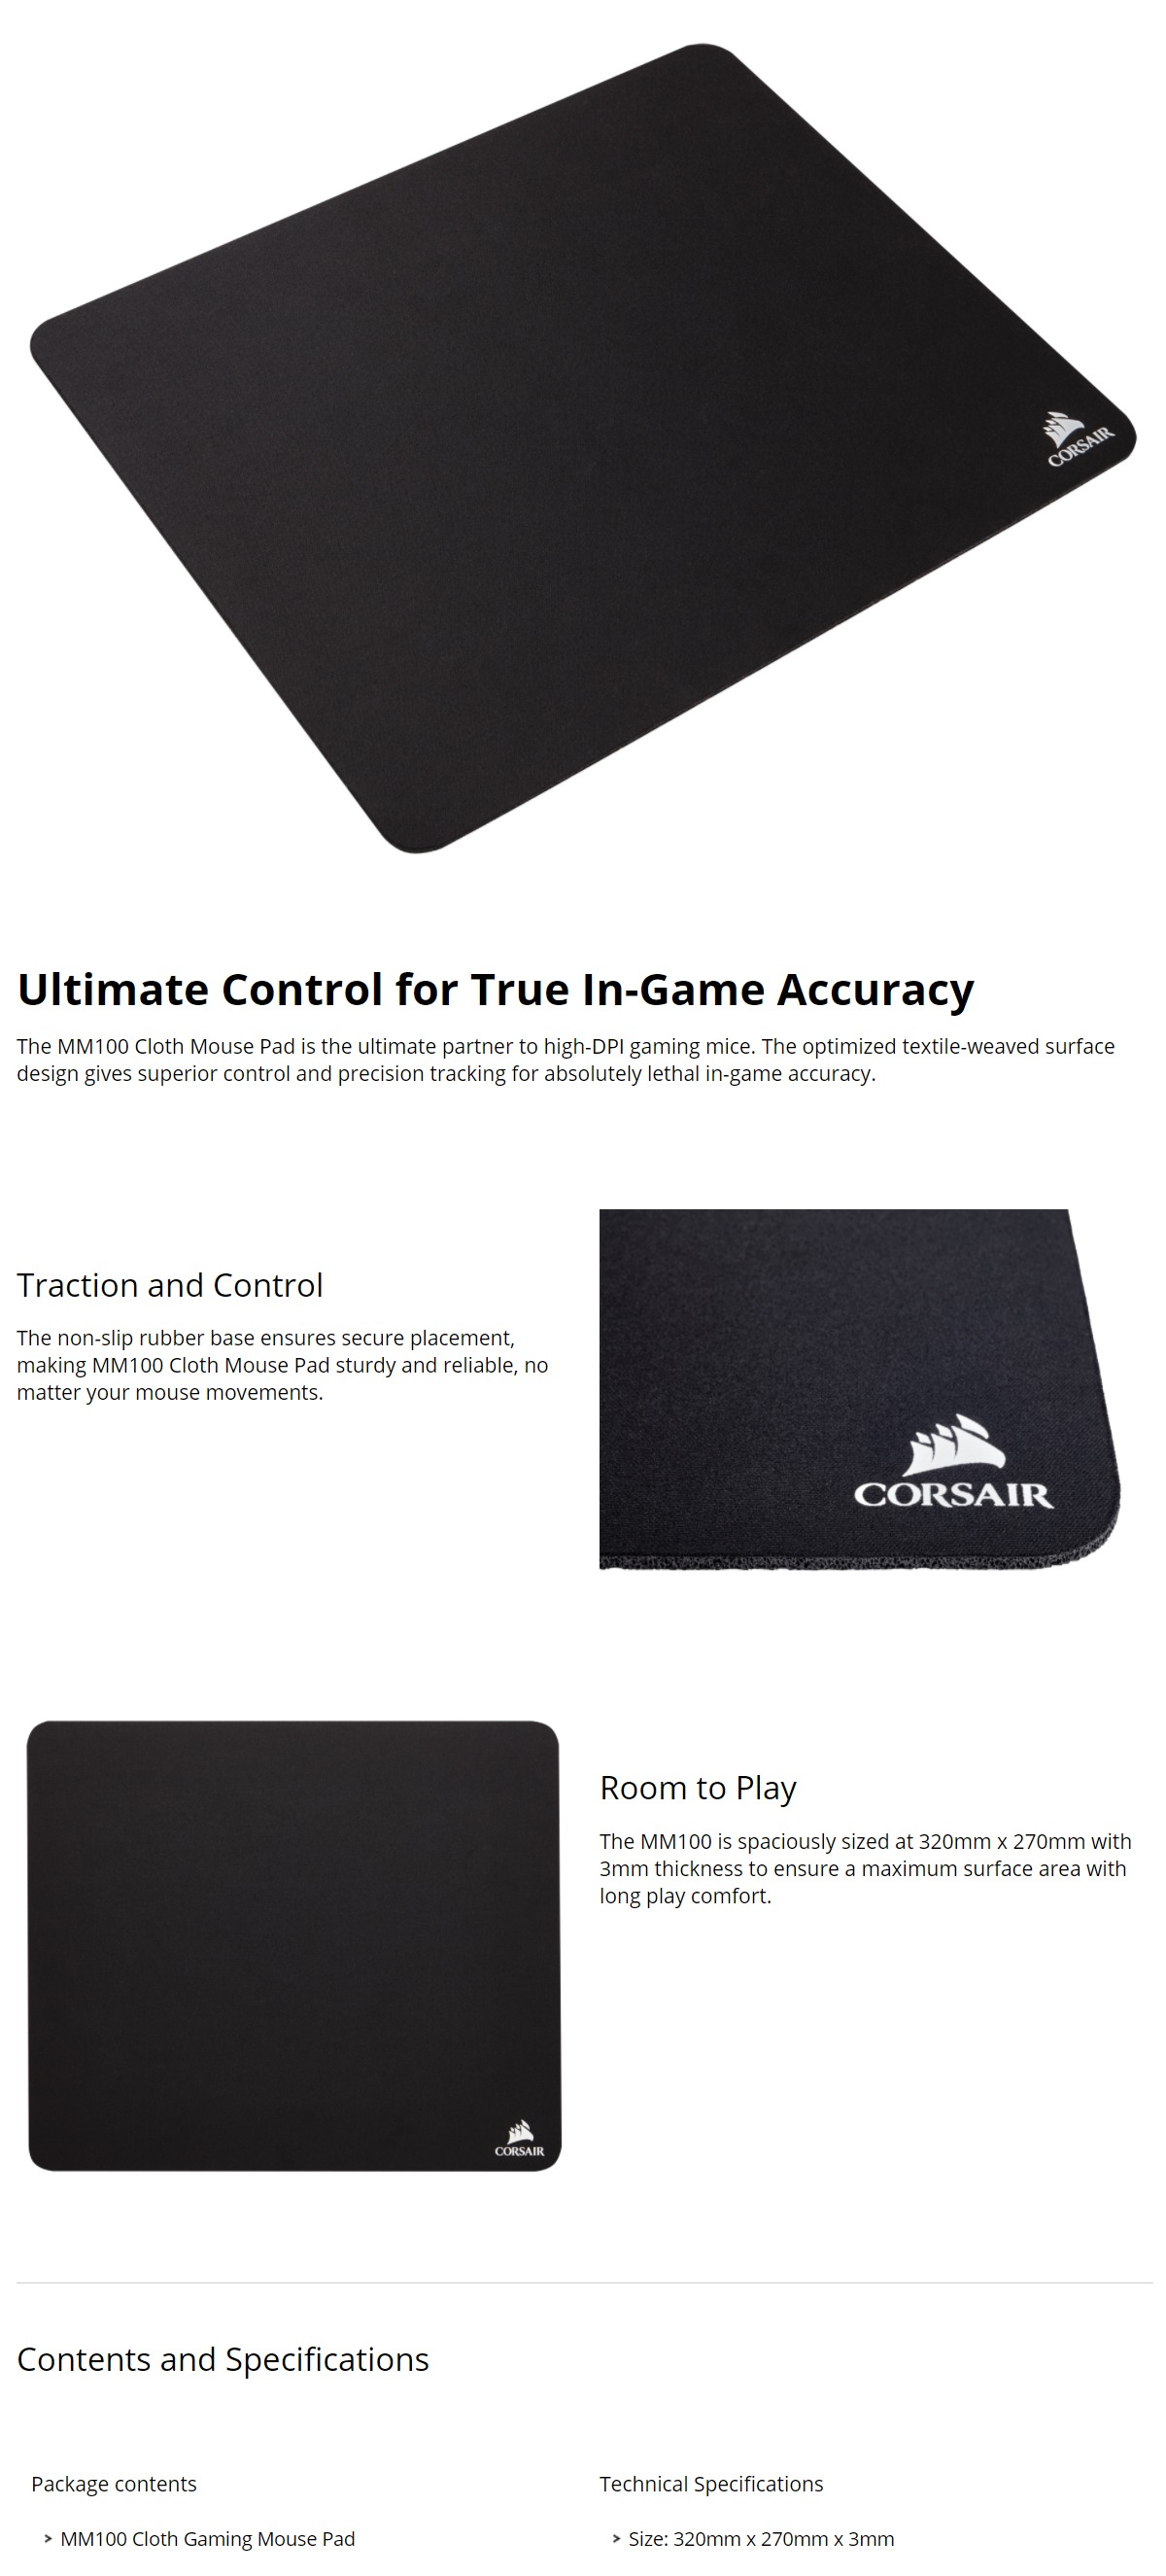 Corsair Mm100 Cloth Gaming Mouse Pad Ch 9100020 Ww Shopping Sturdy Features